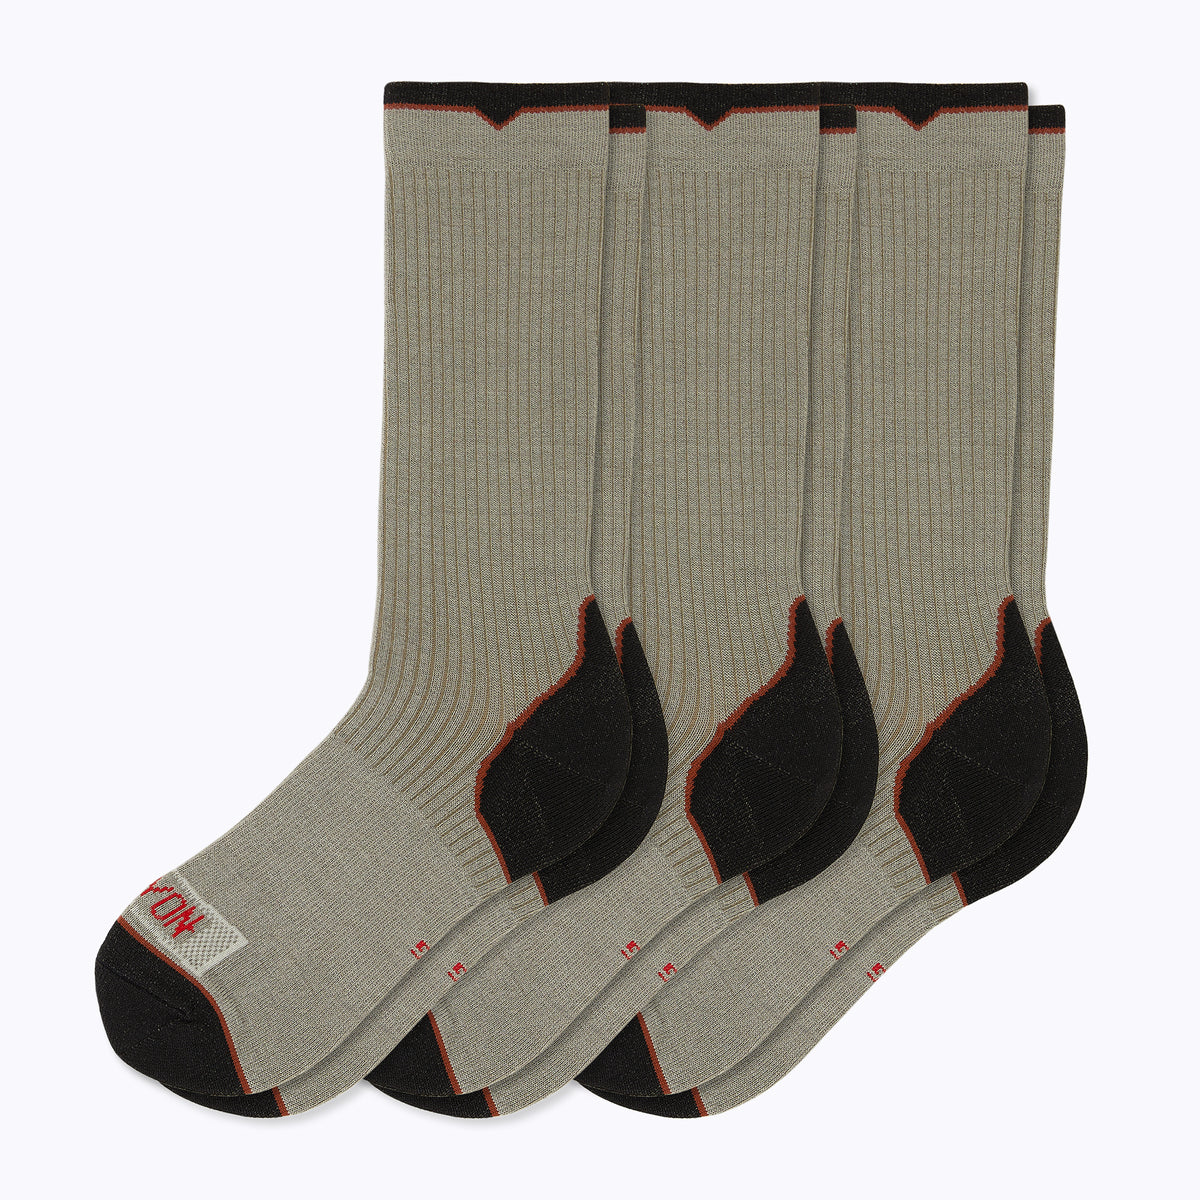 Essential 3 Pack Men's Crew Socks - Sand by Canyon Socks